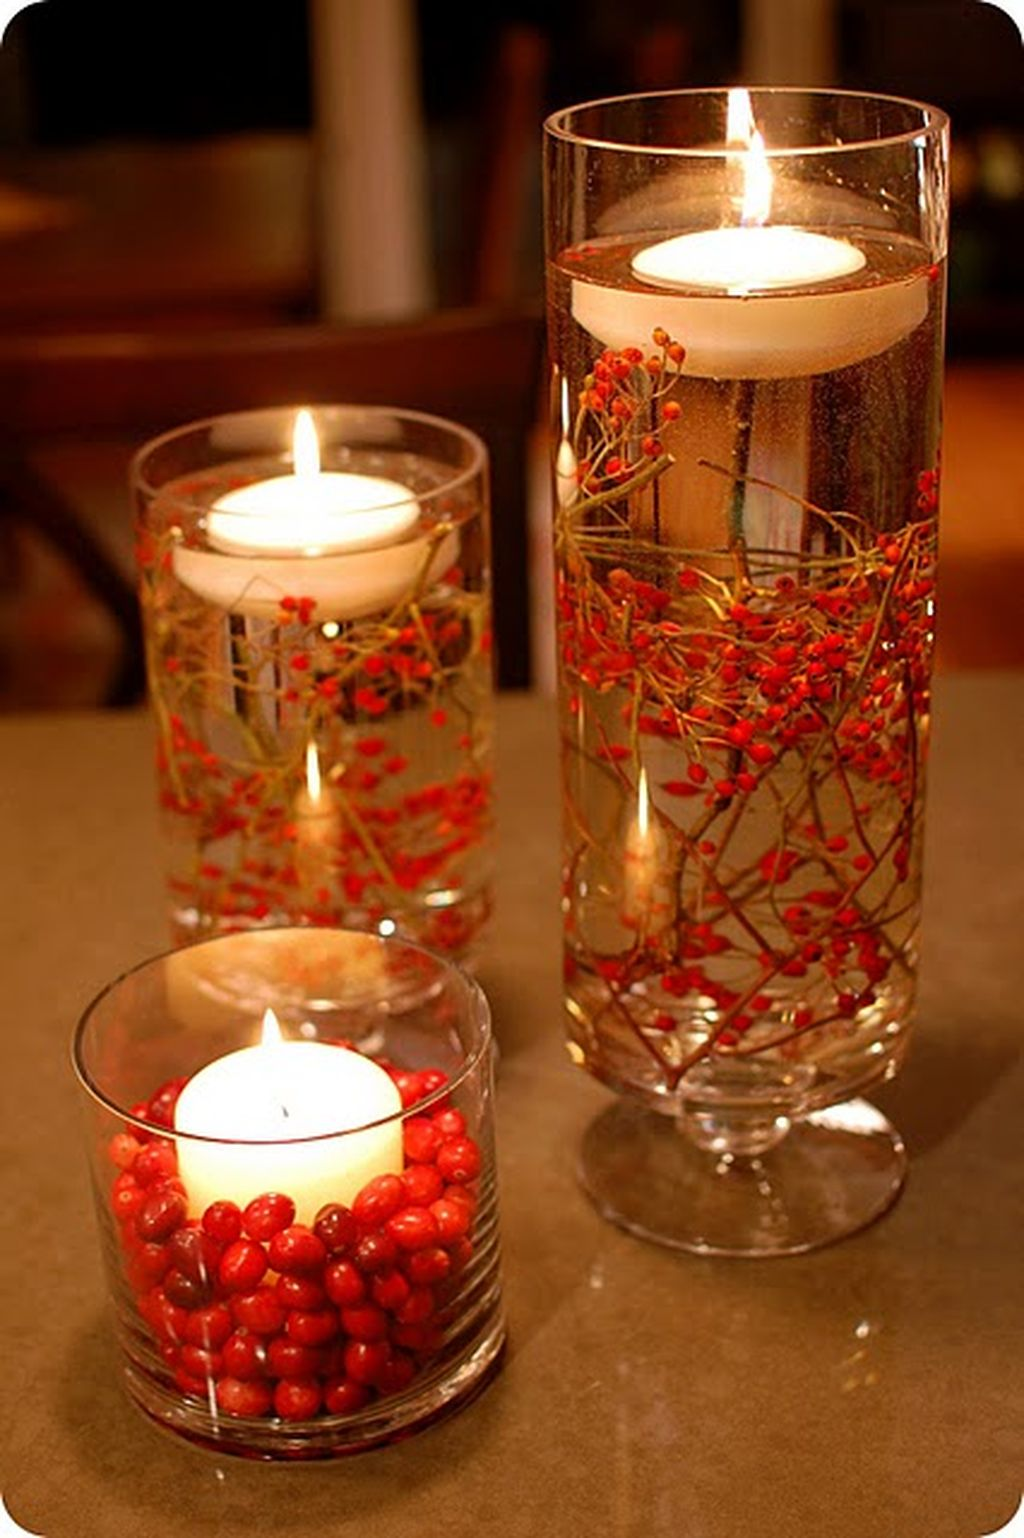 Inspiring Modern Rustic Christmas Centerpieces Ideas With Candles 05